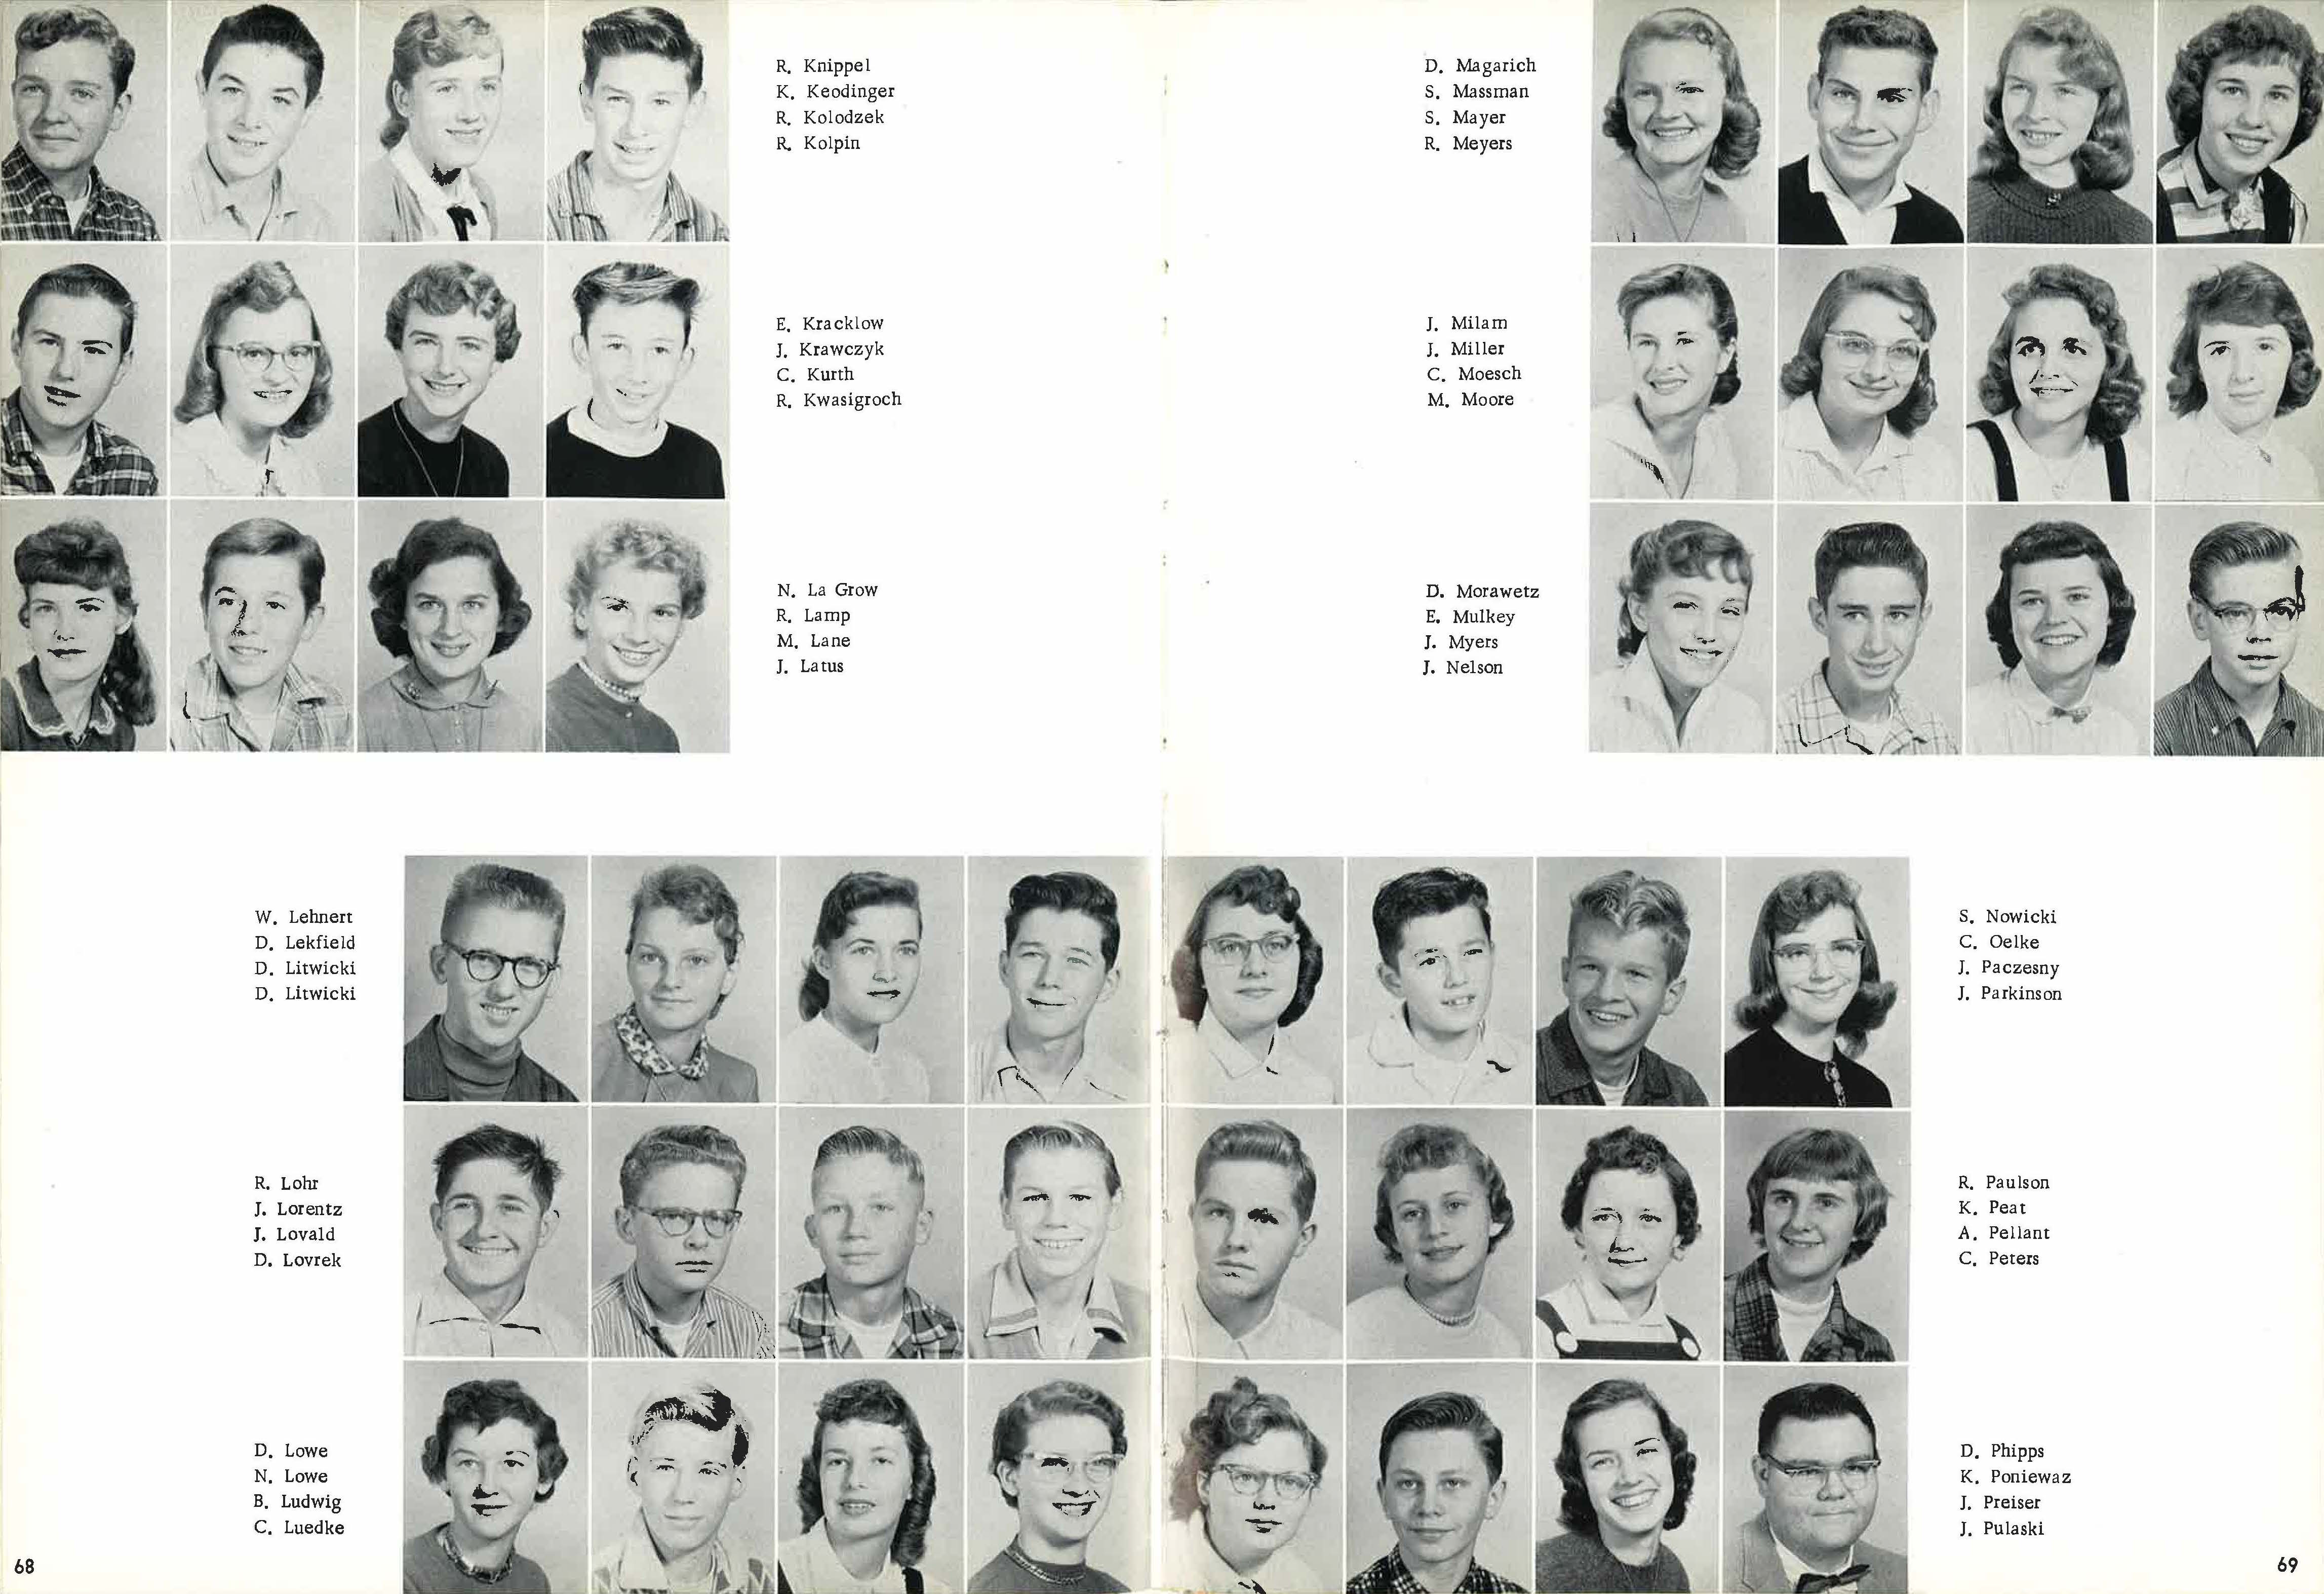 1958_Yearbook_68-69.jpg